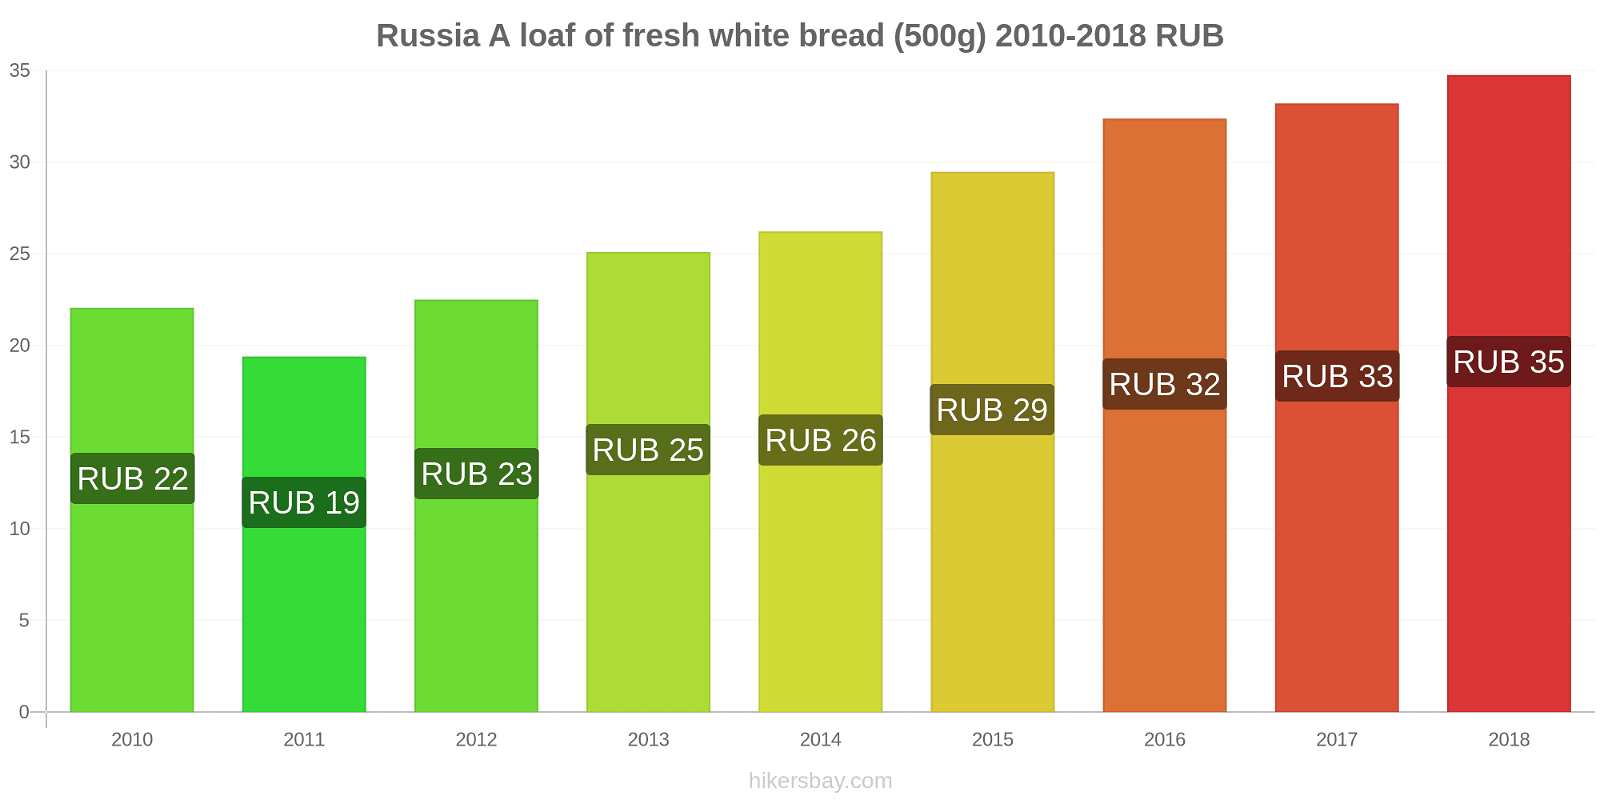 Russia price changes A loaf of fresh white bread (500g) hikersbay.com